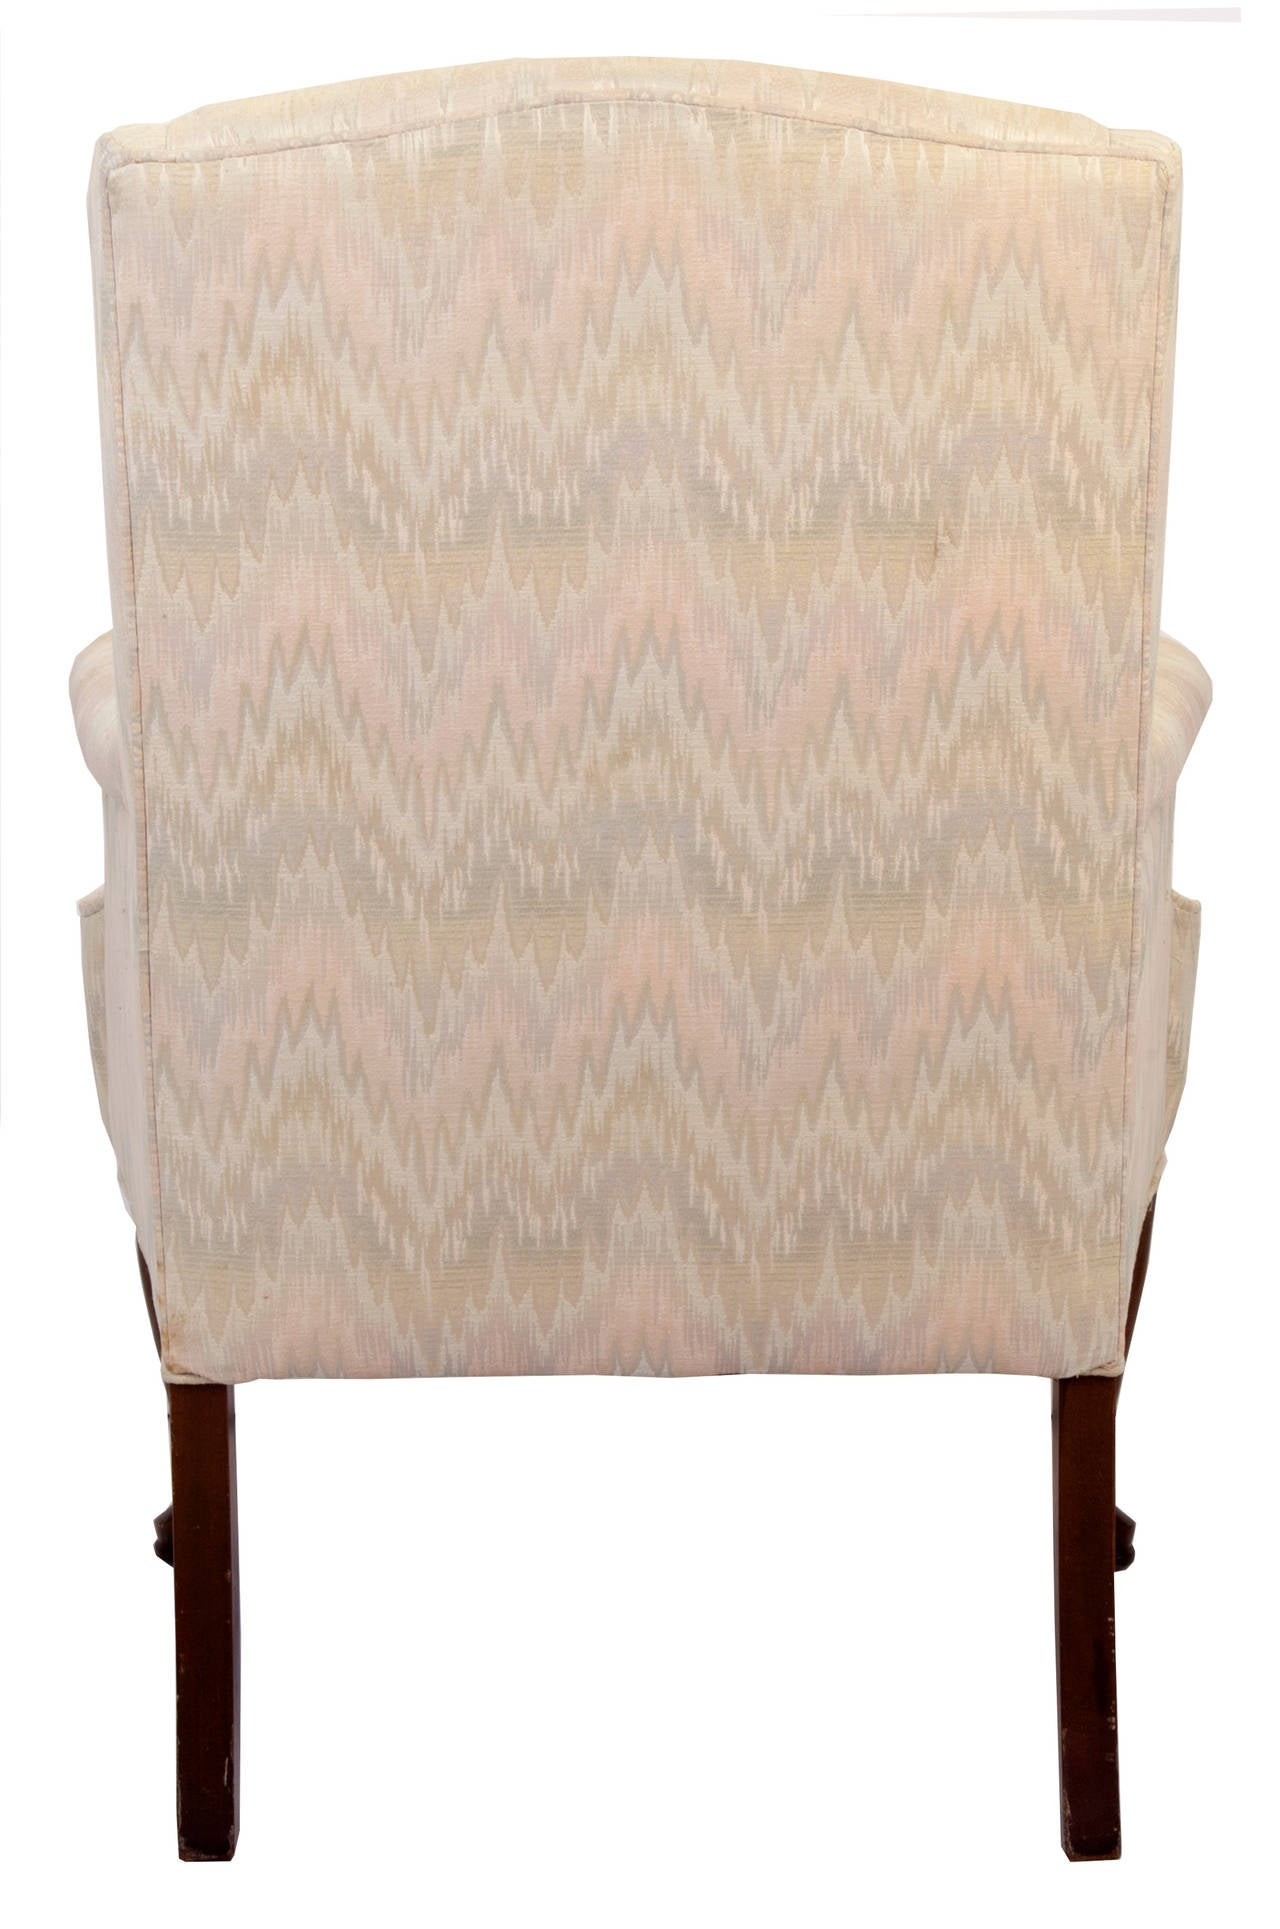 Queen Anne Style Upholstered Wing Chair For Sale at 1stdibs